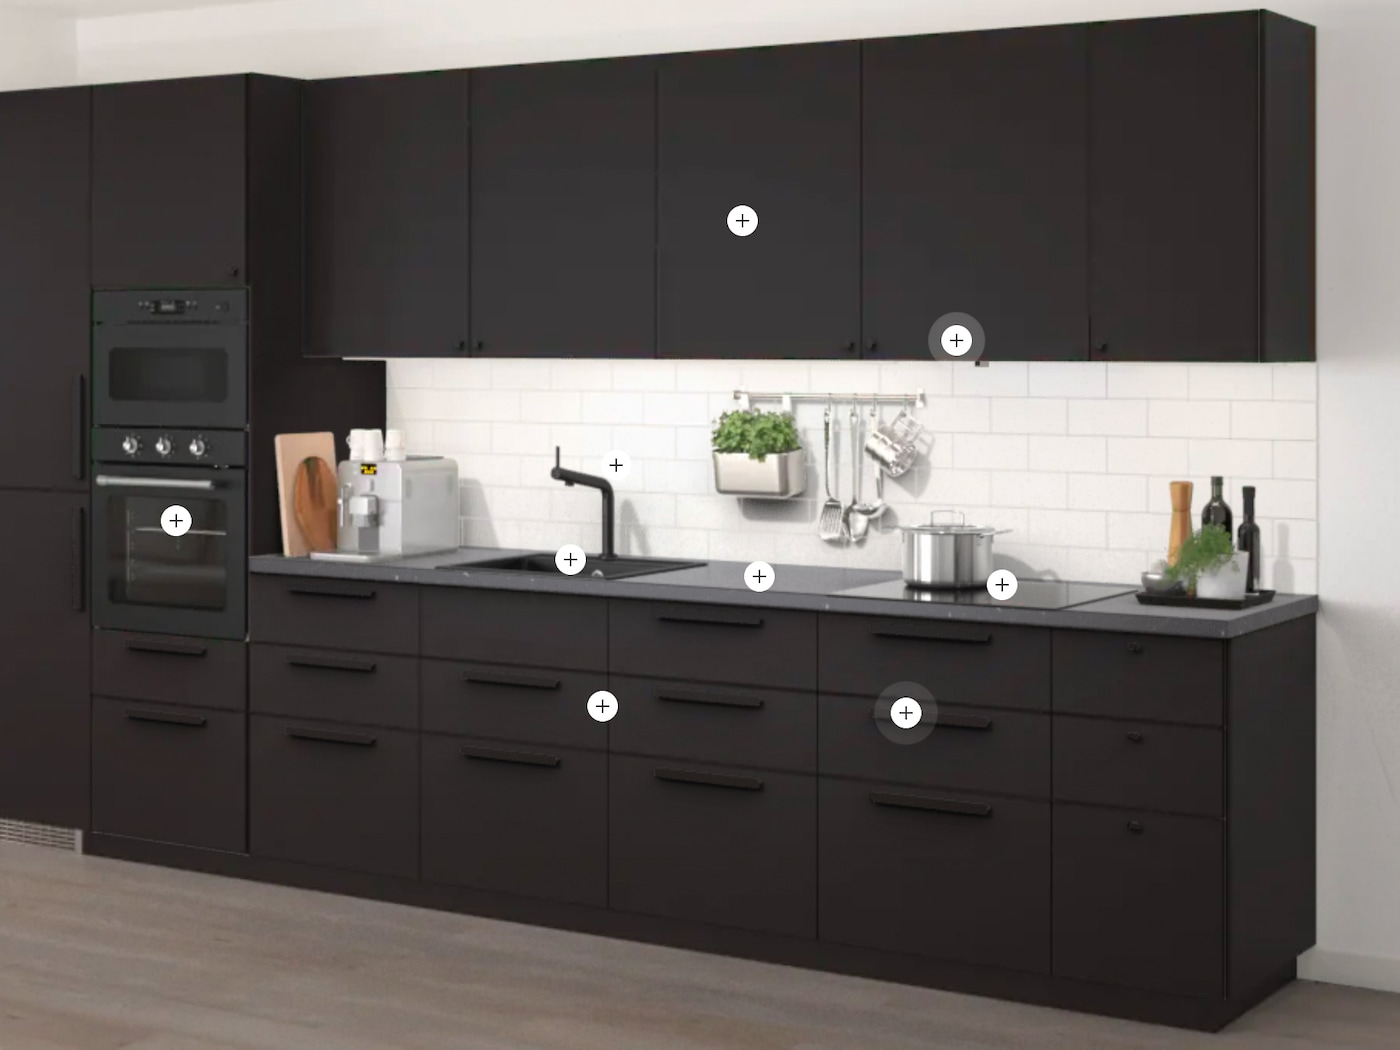 An interactive kitchen to personalize - IKEA